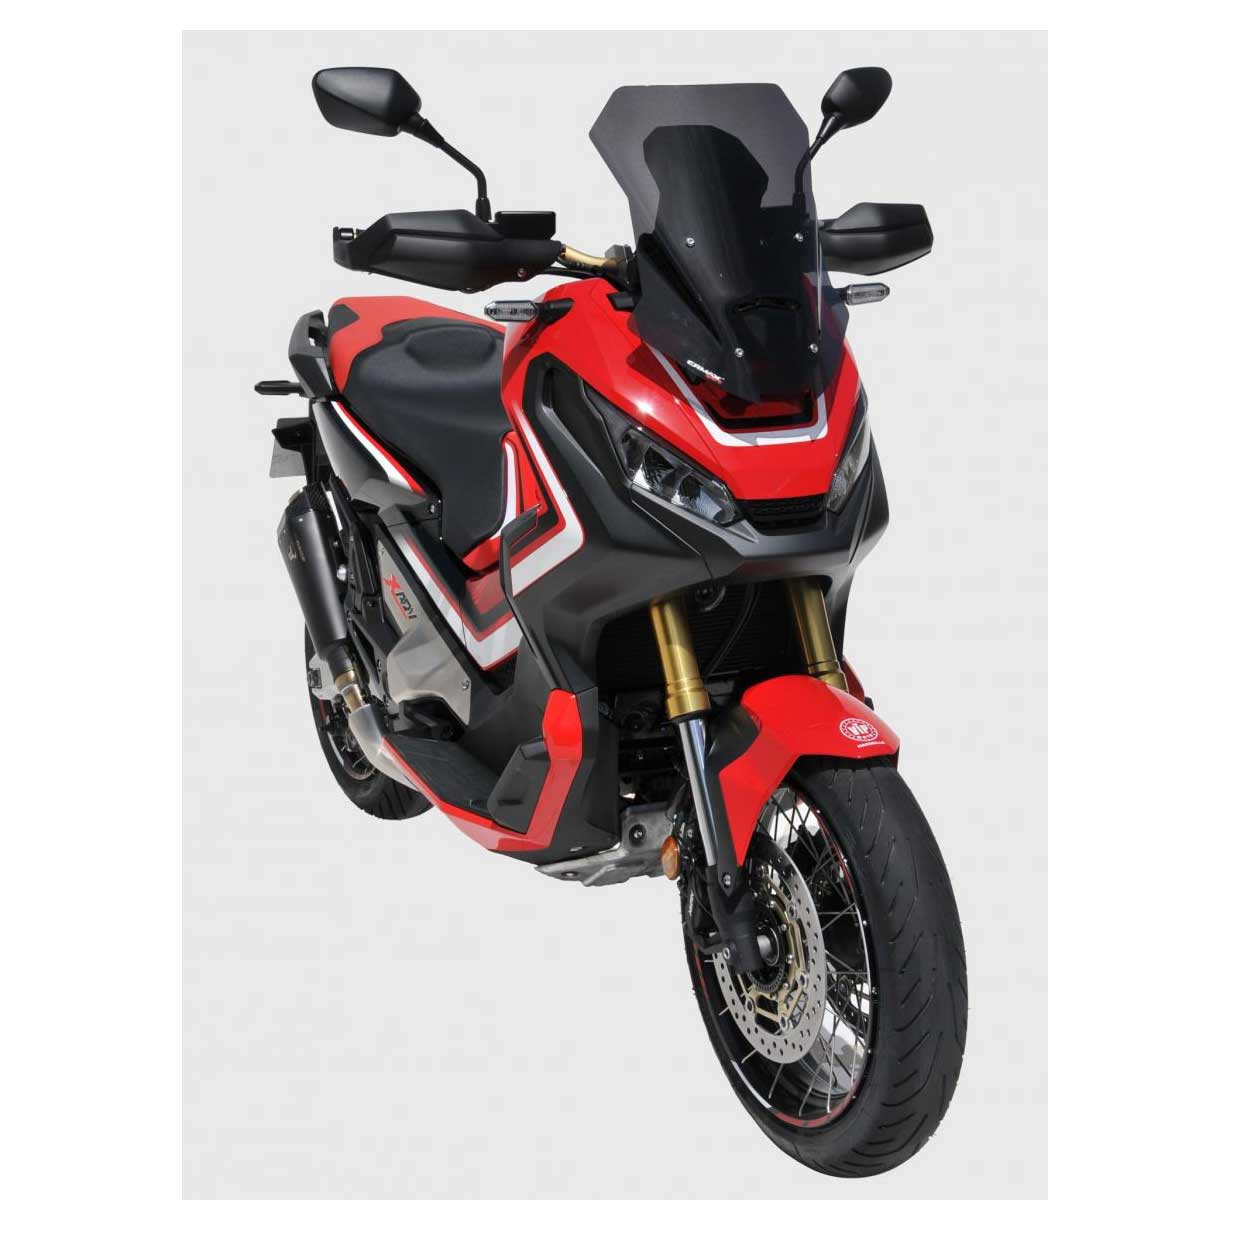 bulle ermax touring honda x adv 2017 noir clair accessoires scooter honda japauto. Black Bedroom Furniture Sets. Home Design Ideas